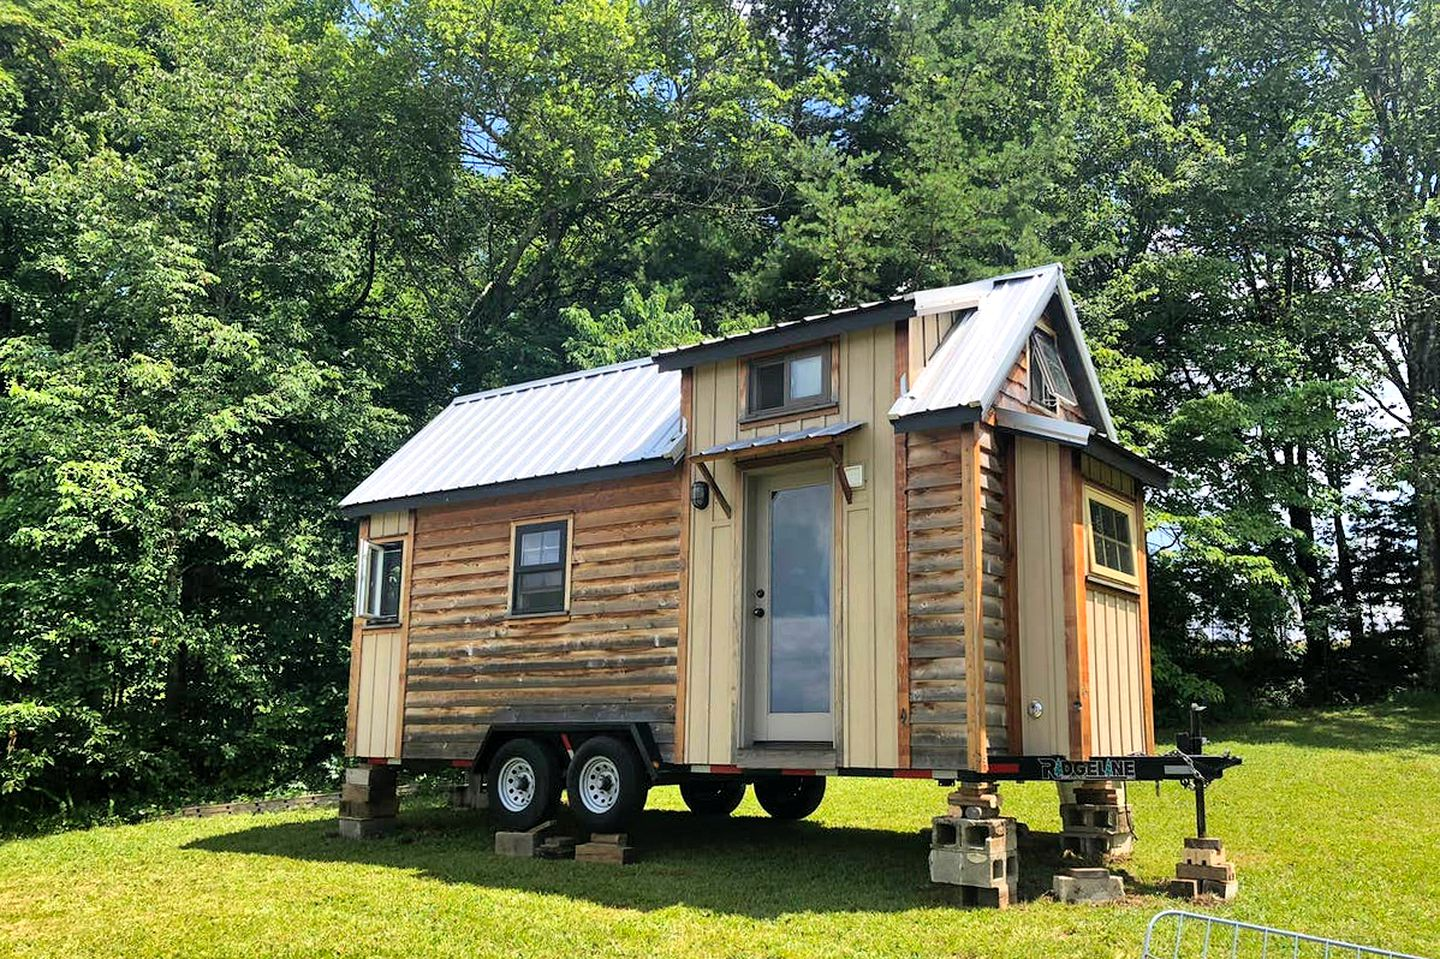 This Tennessee tiny house is great for a glamping getaway in Grandview